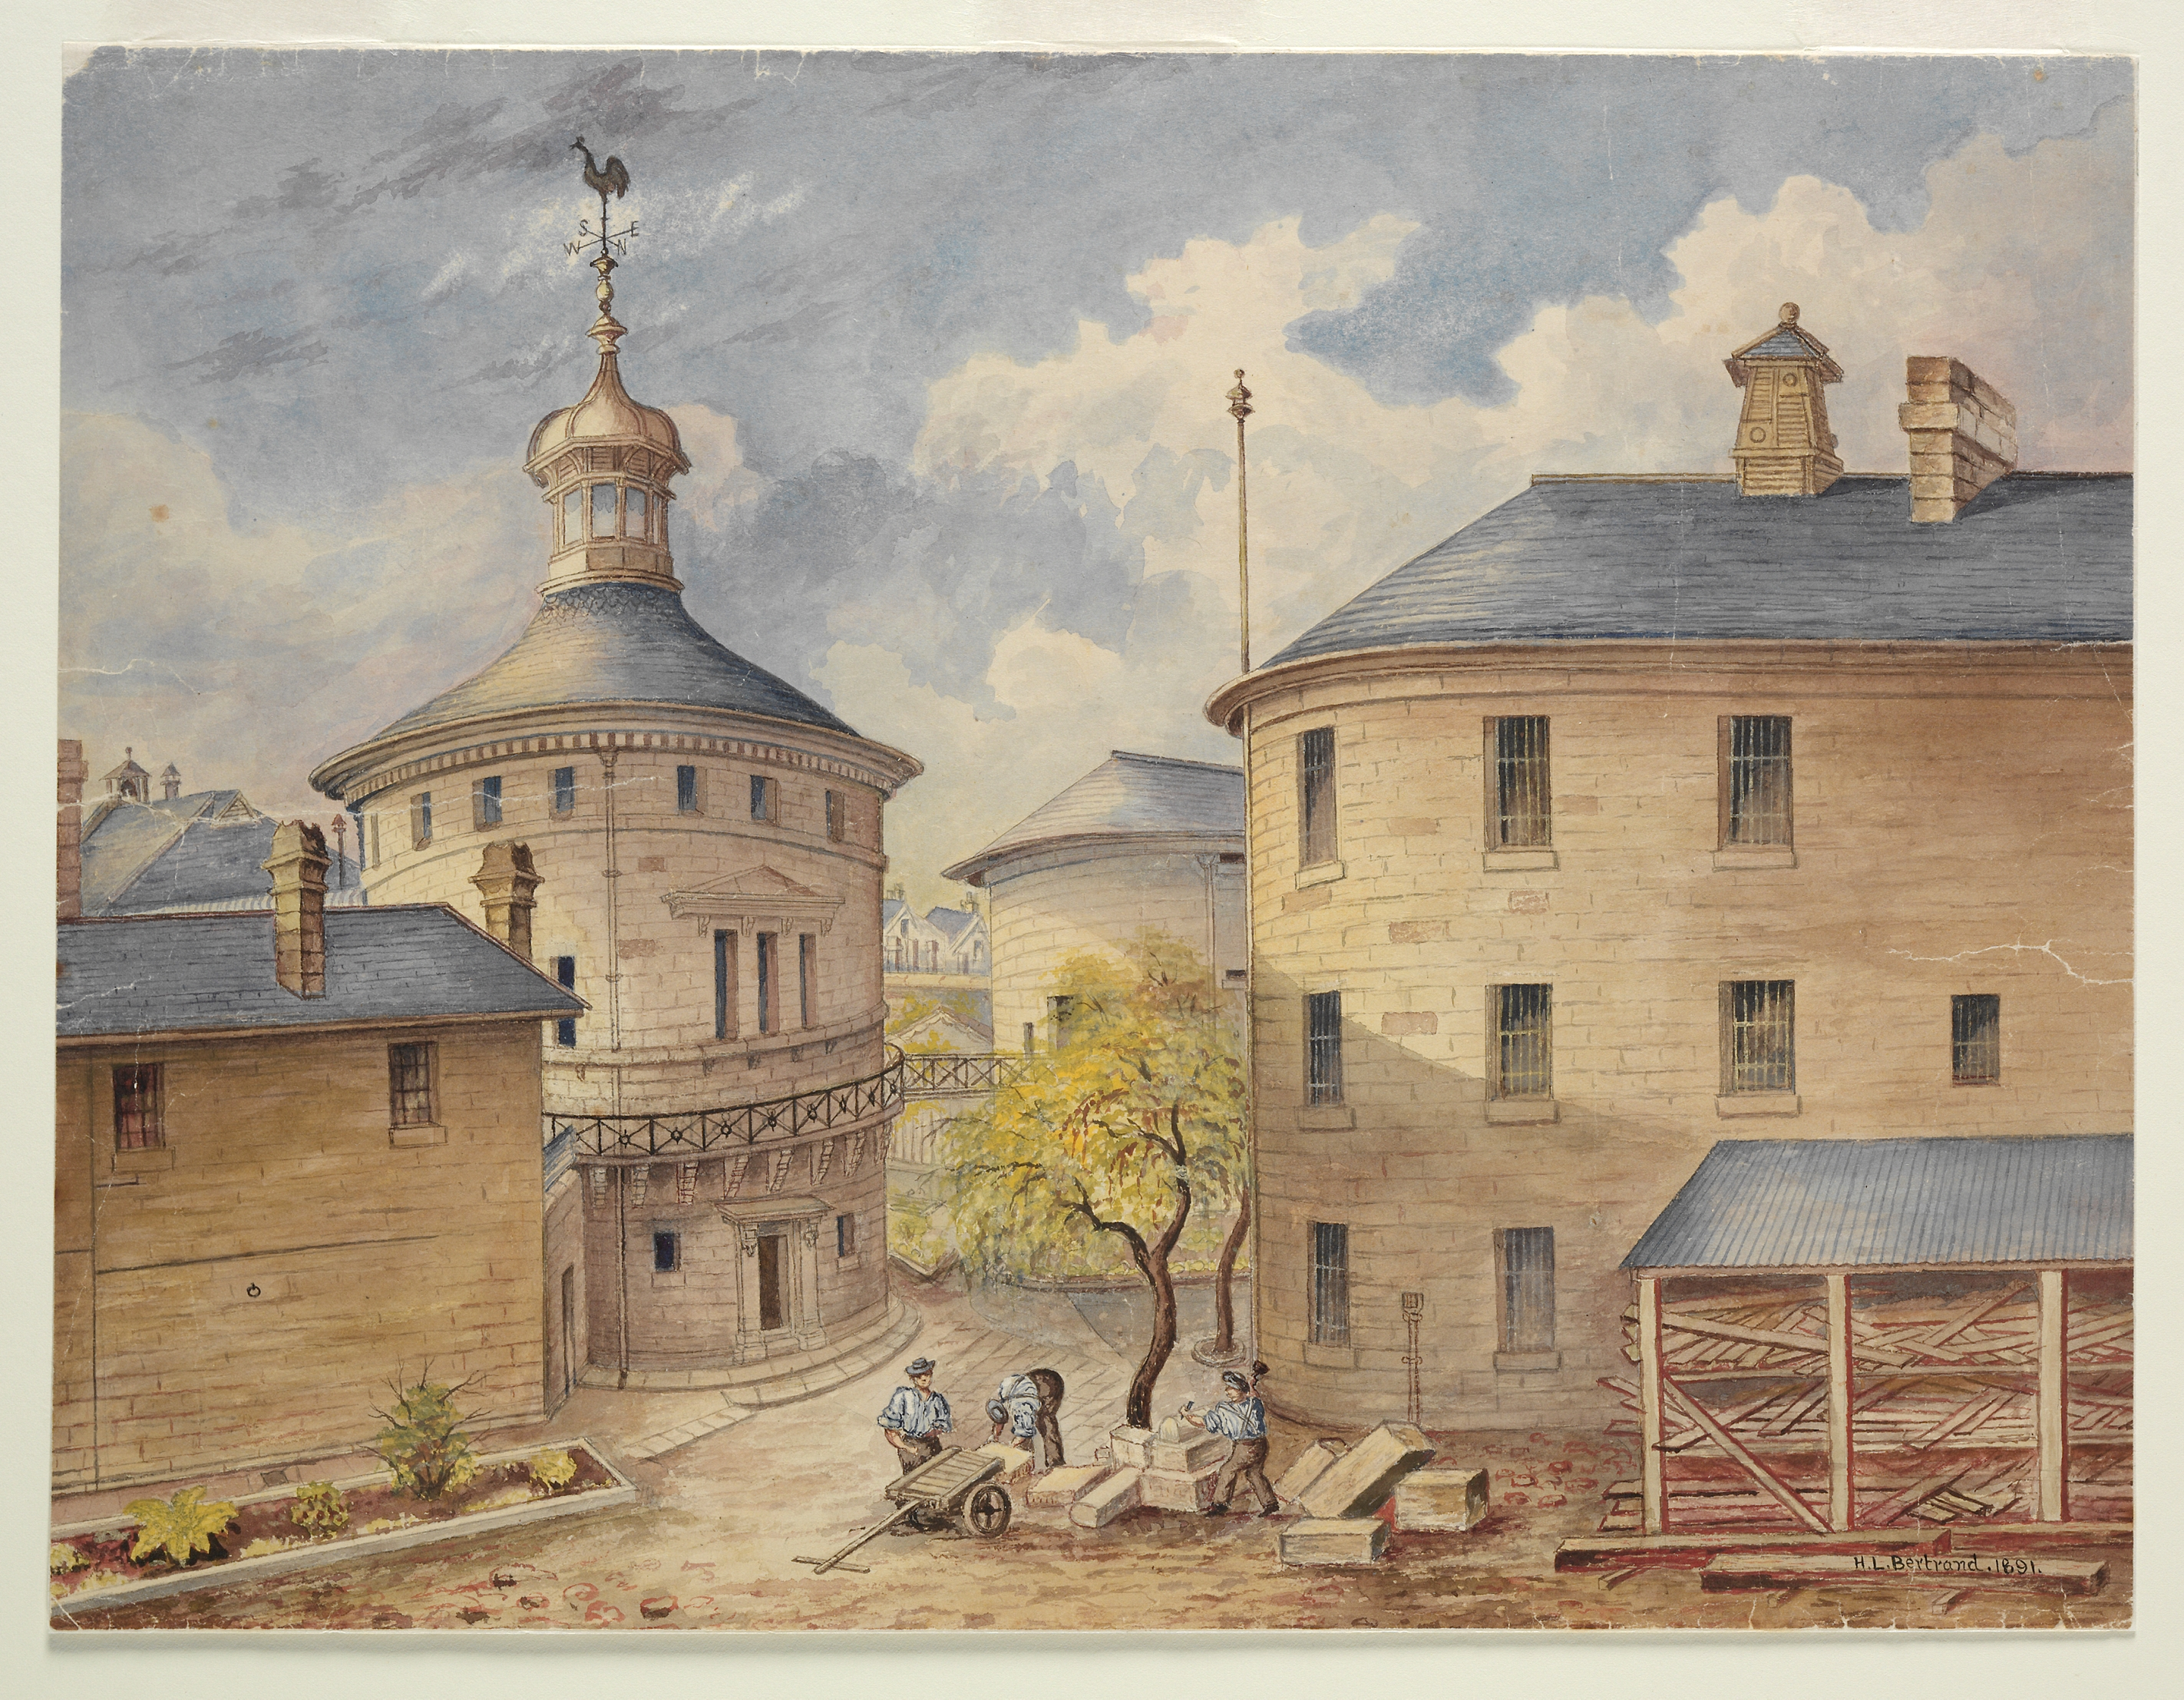 Painting showing convicts carving and moving sandstone blocks inside the gaol complex, the buildings arranged around a courtyard.